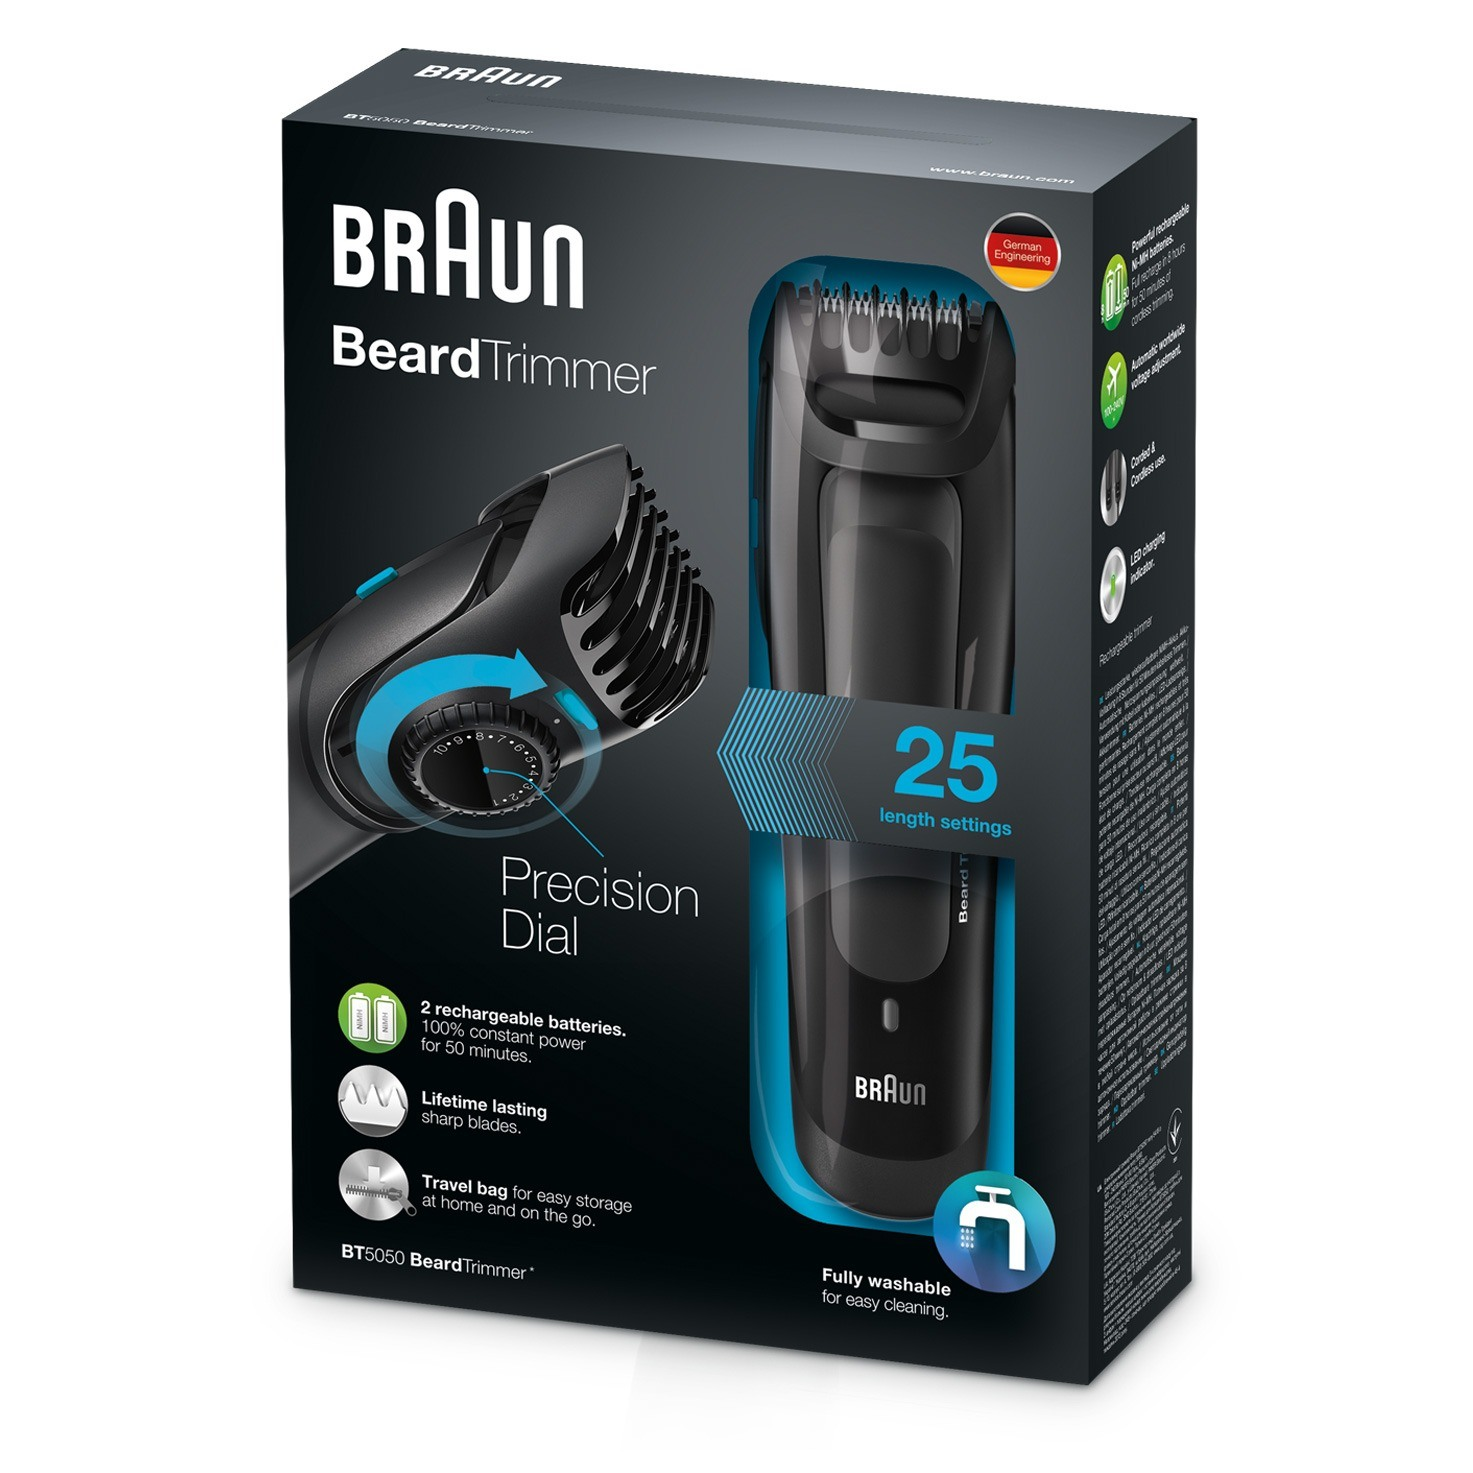 Braun Beard Trimmer BT5050 - packaging